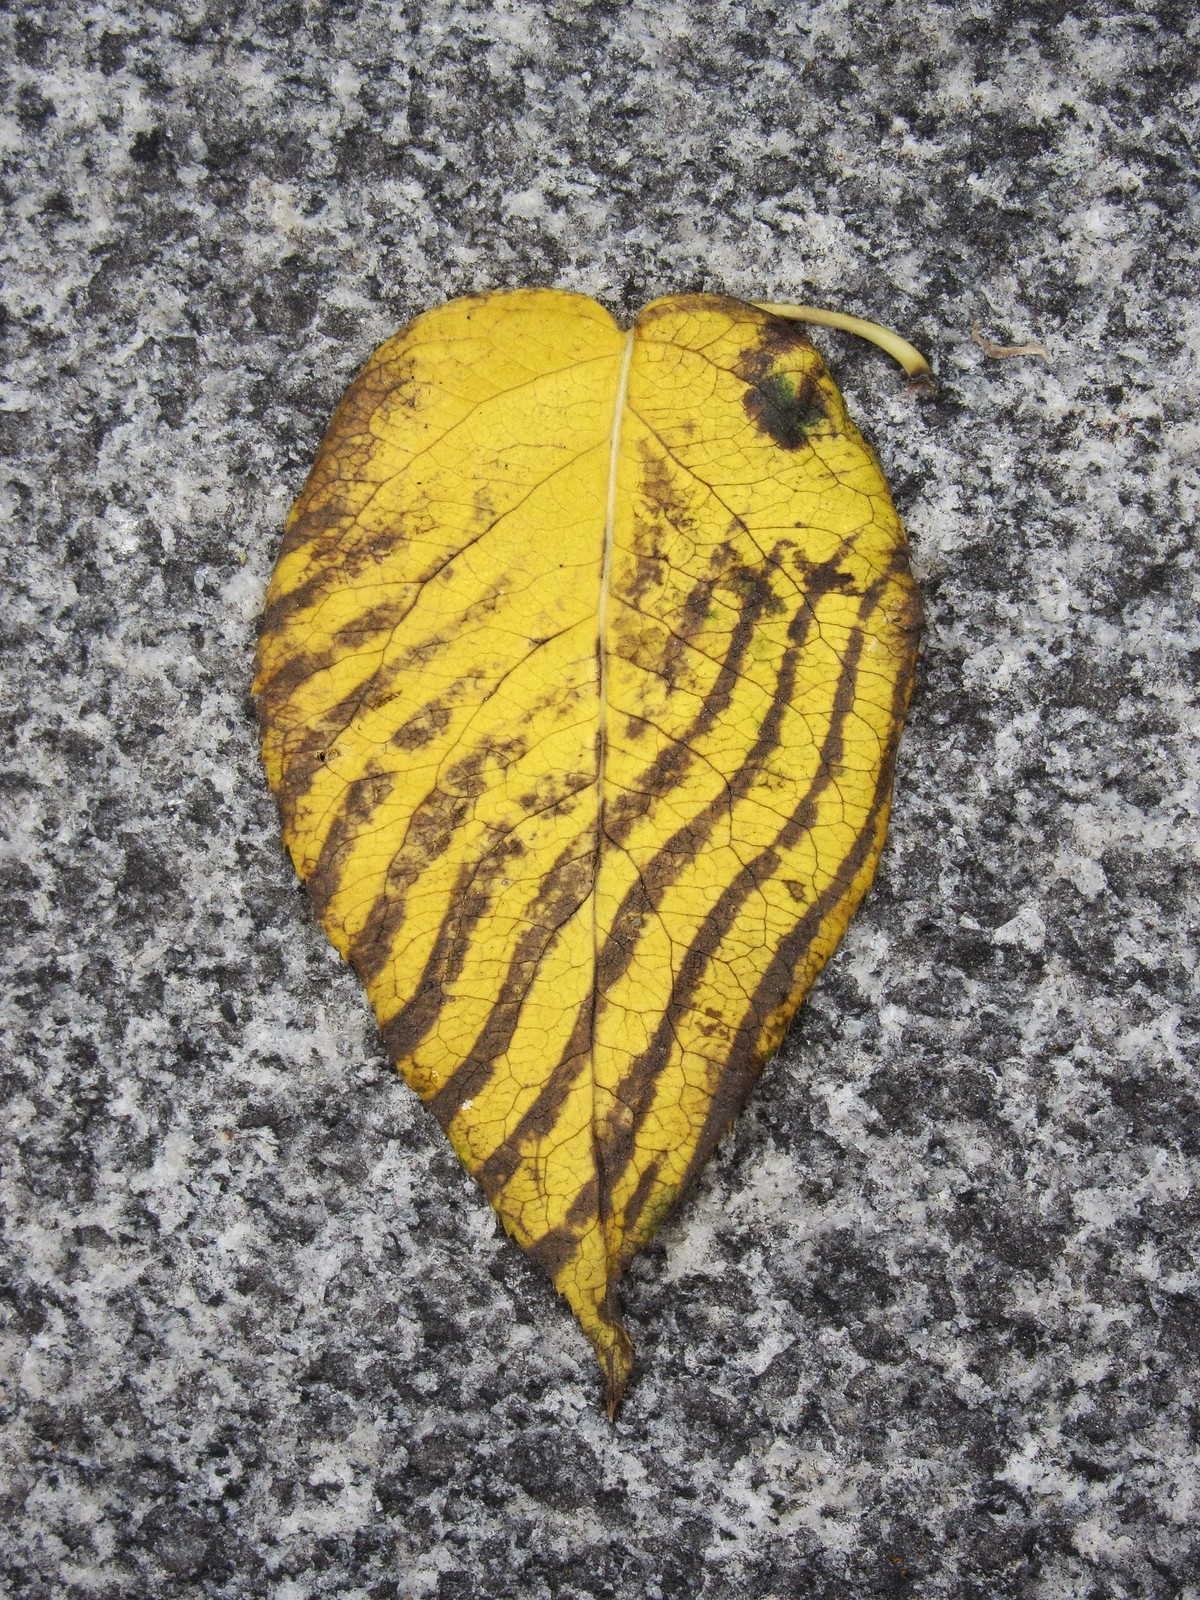 Single autumn leaf with dark wavy lines - traces of shoeprint on it